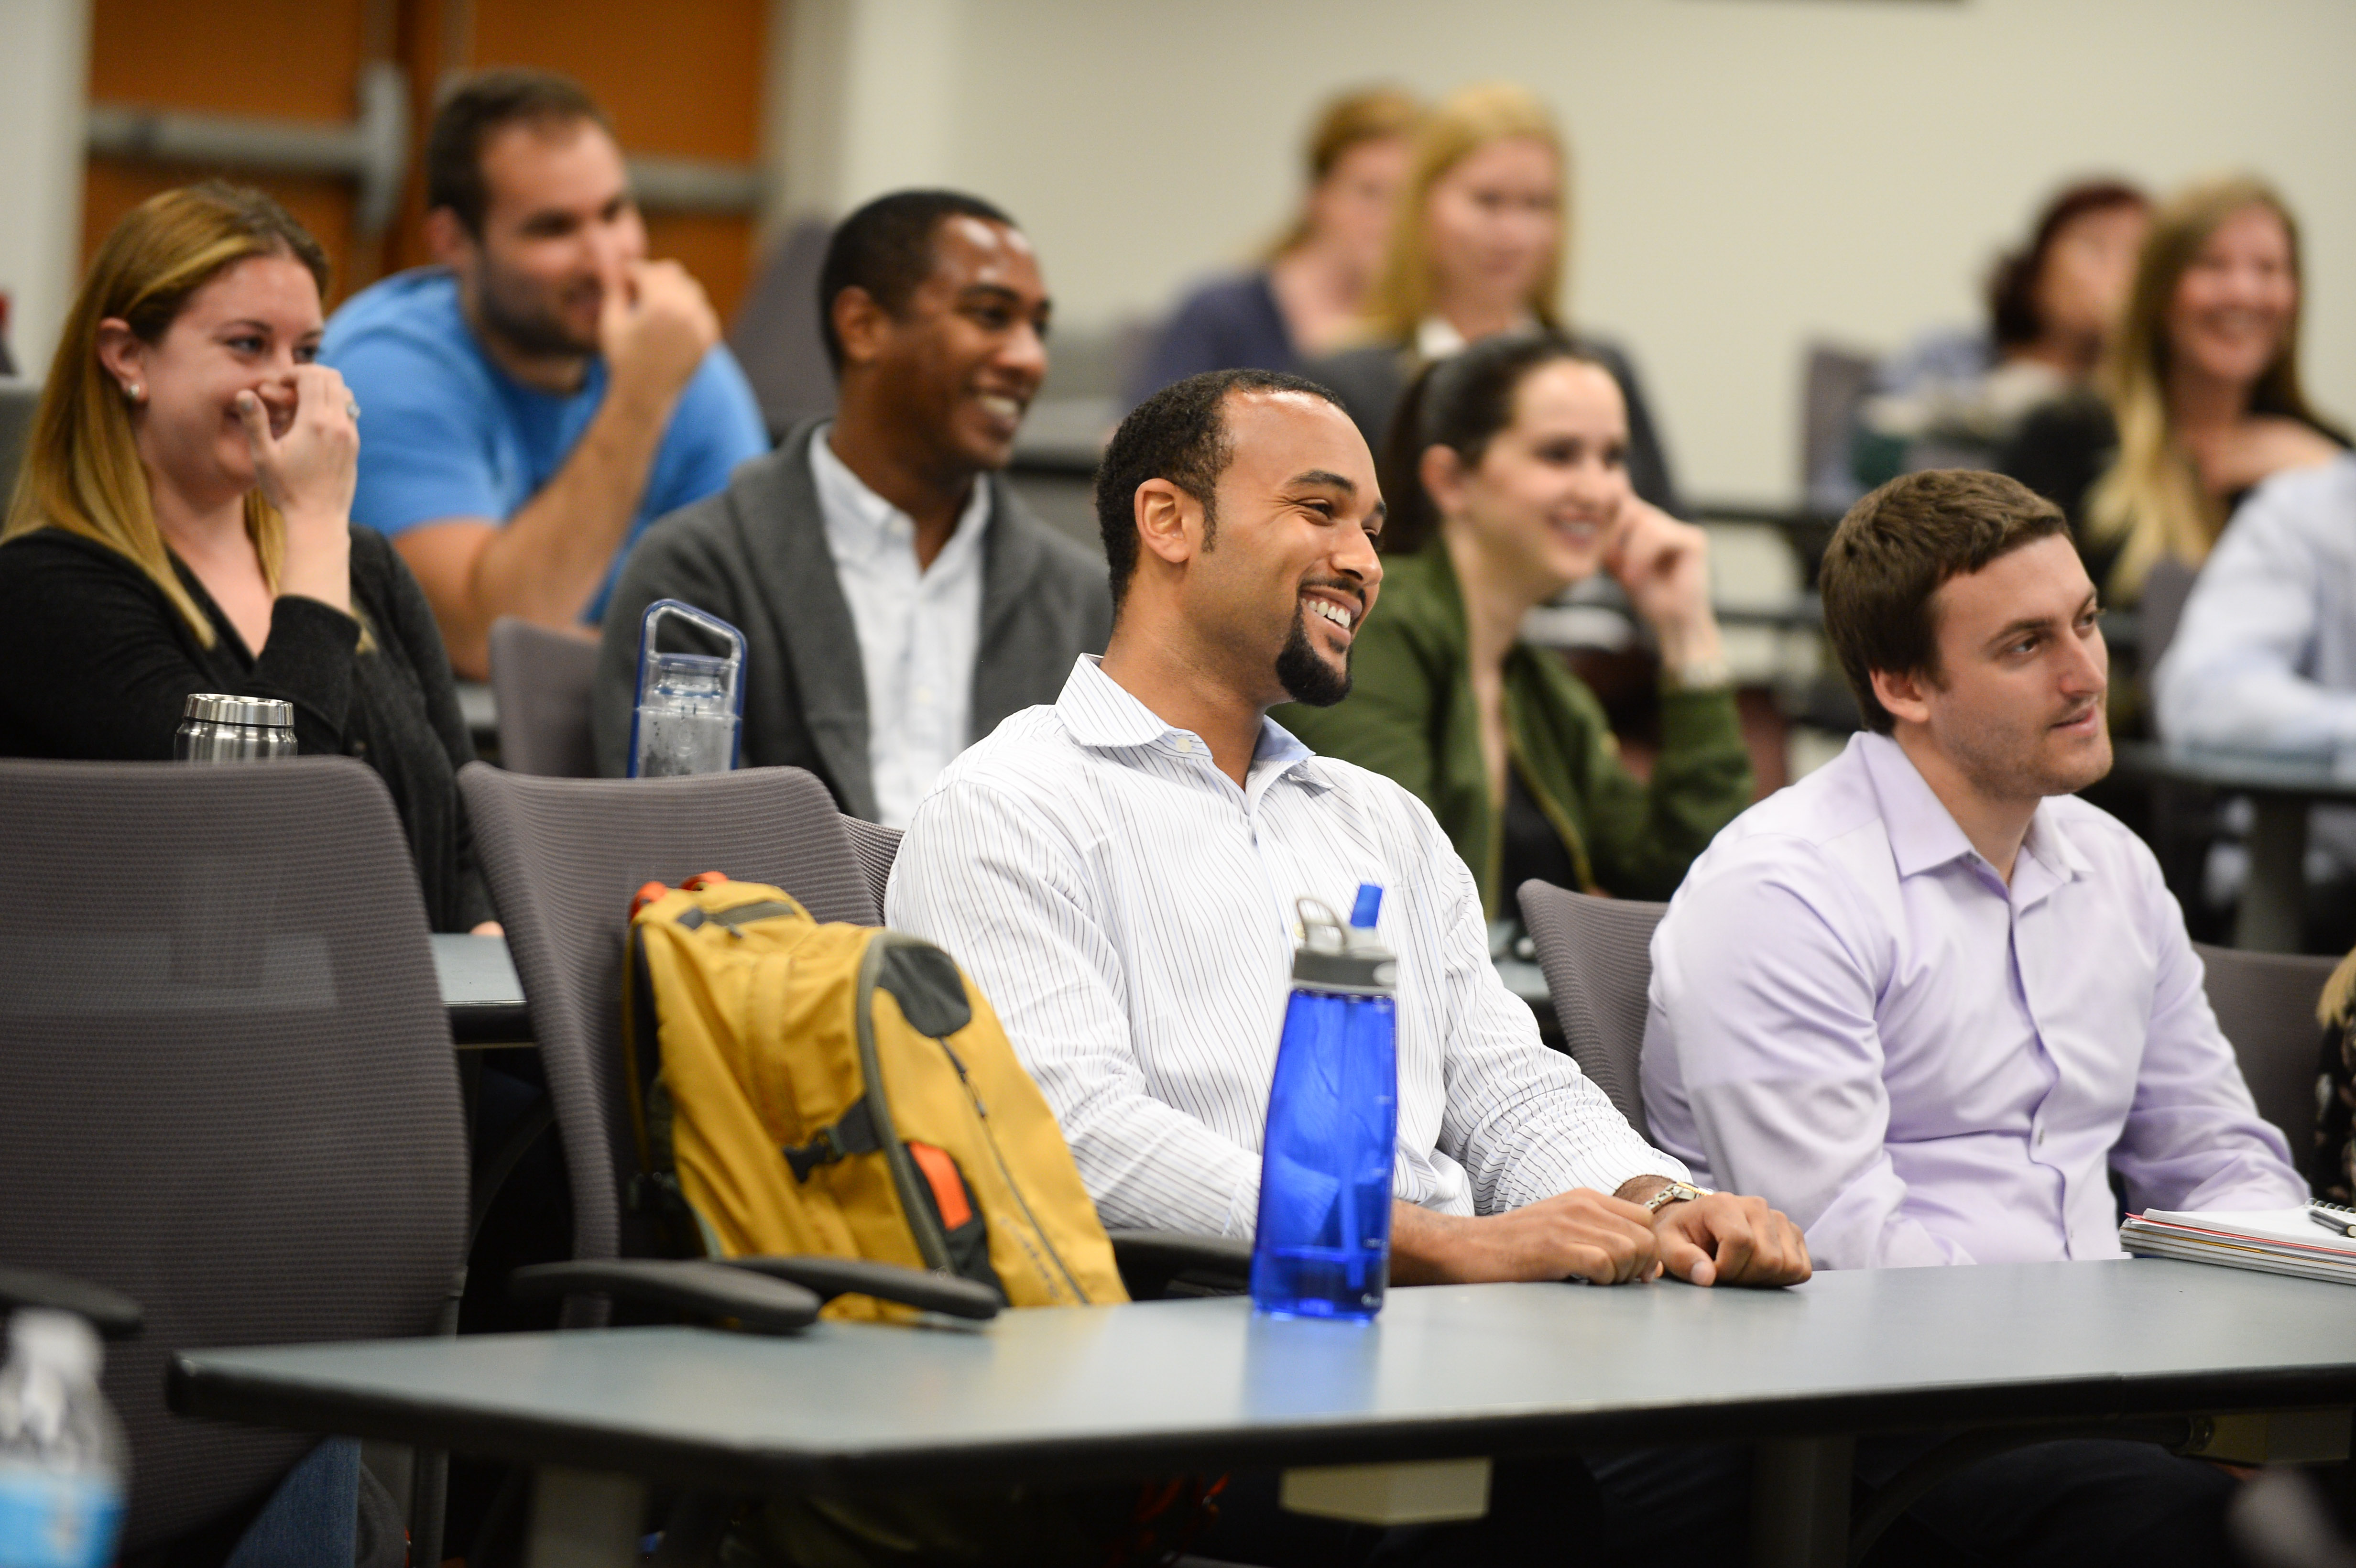 Tulane Law School welcomes prospective students